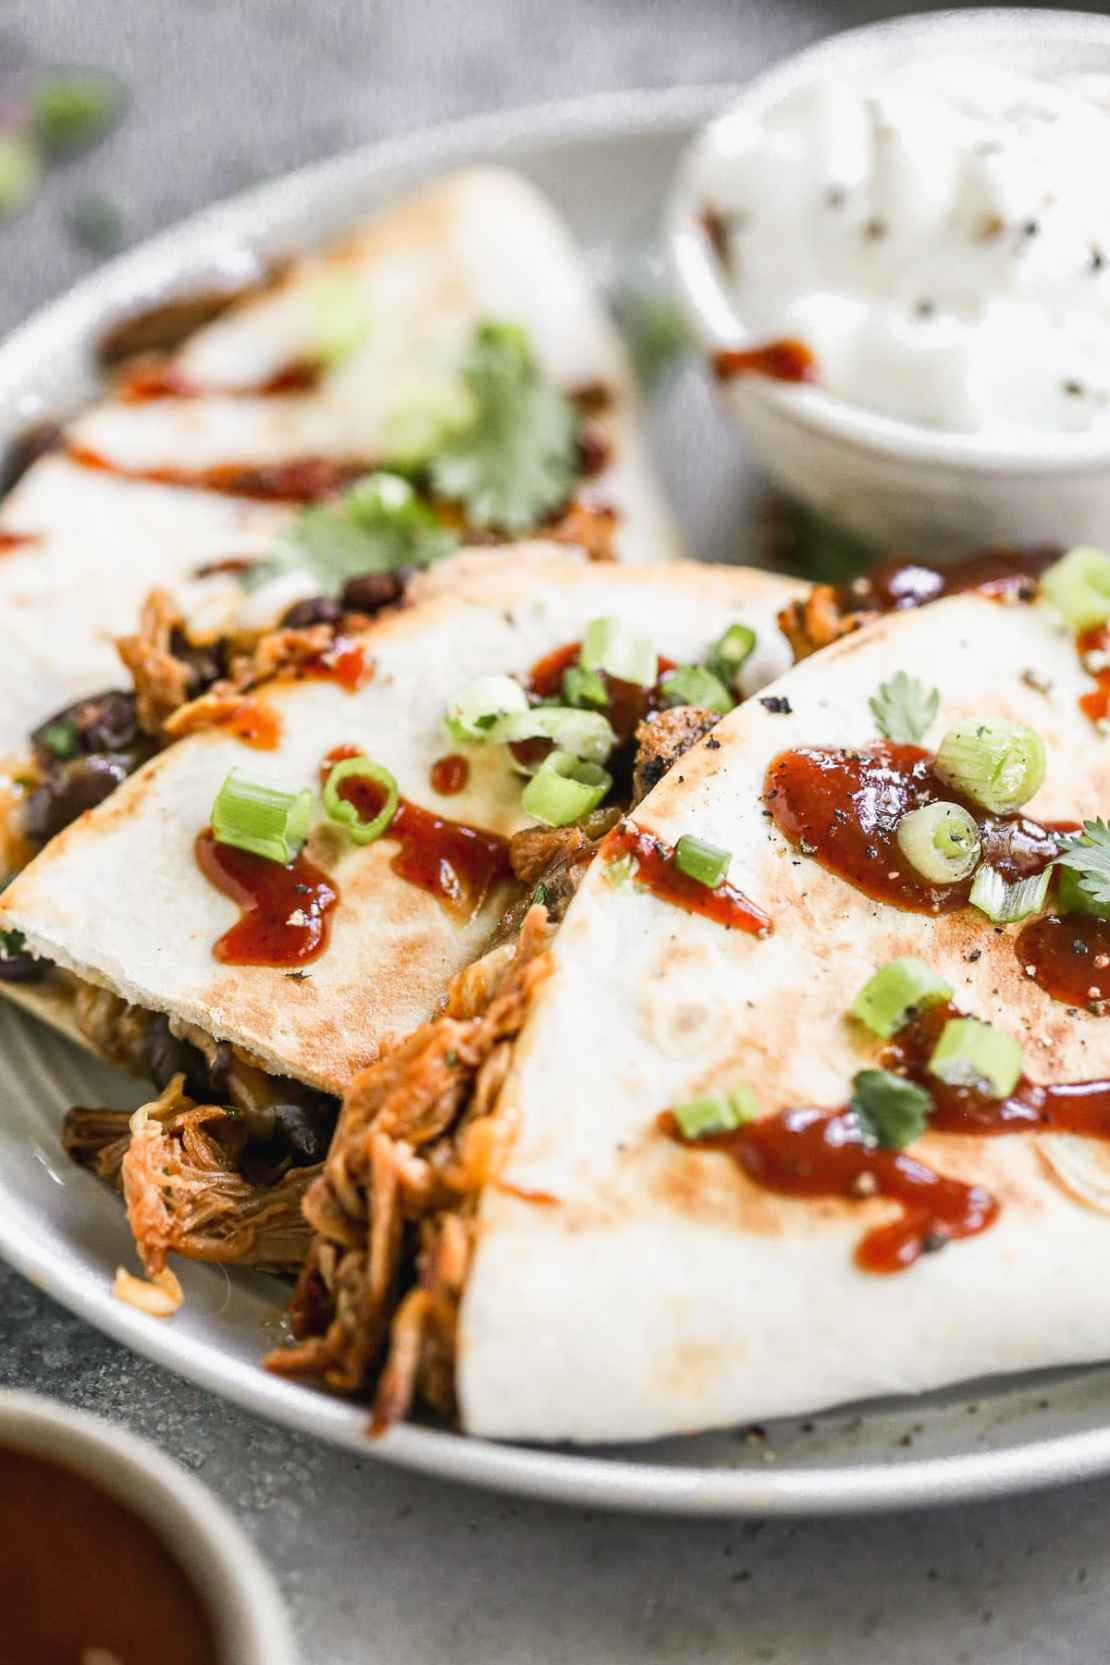 pulled pork quesadillas on a plate